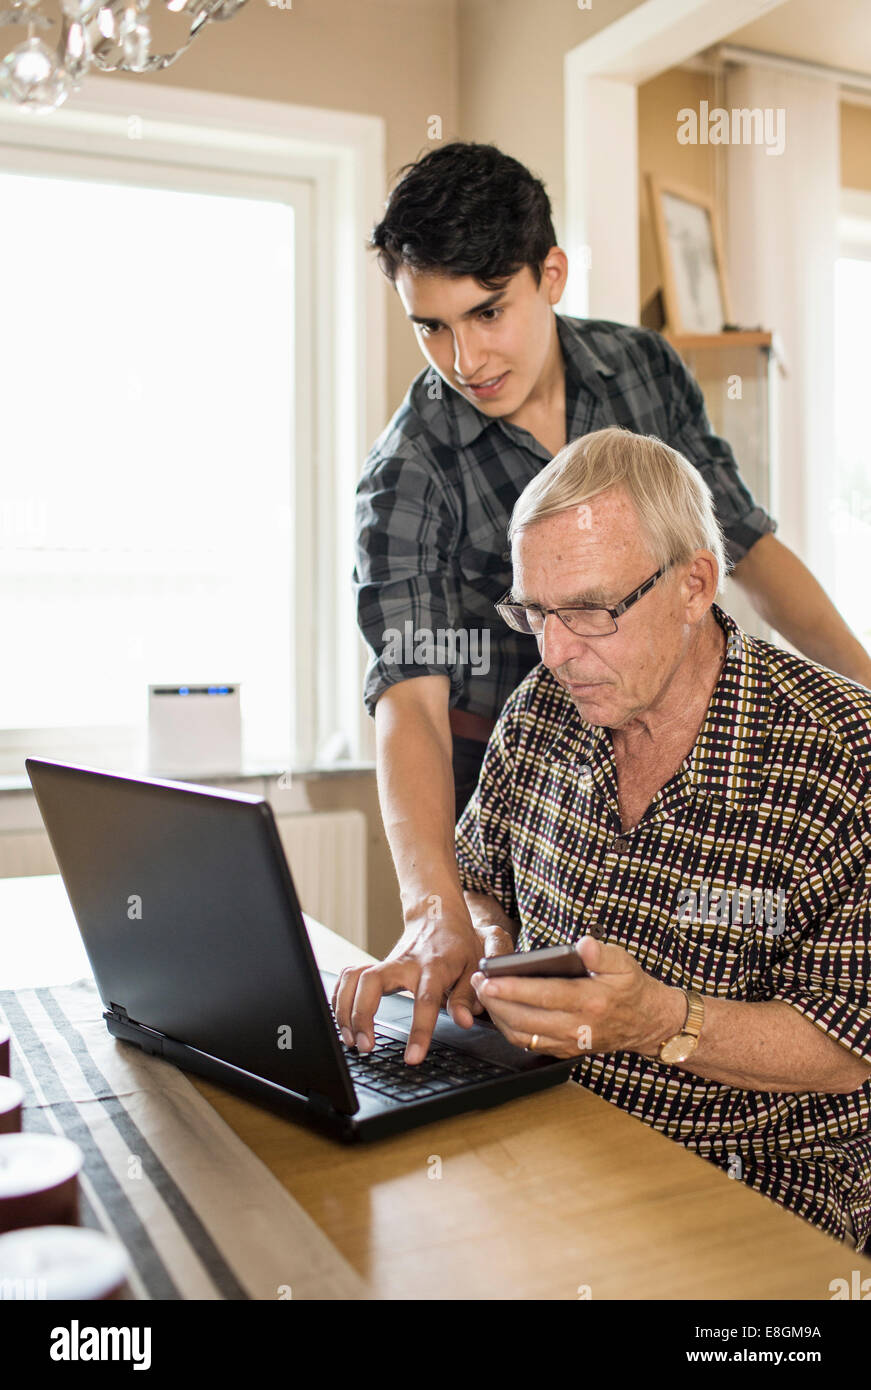 Grandson assisting grandfather in using laptop at home - Stock Image